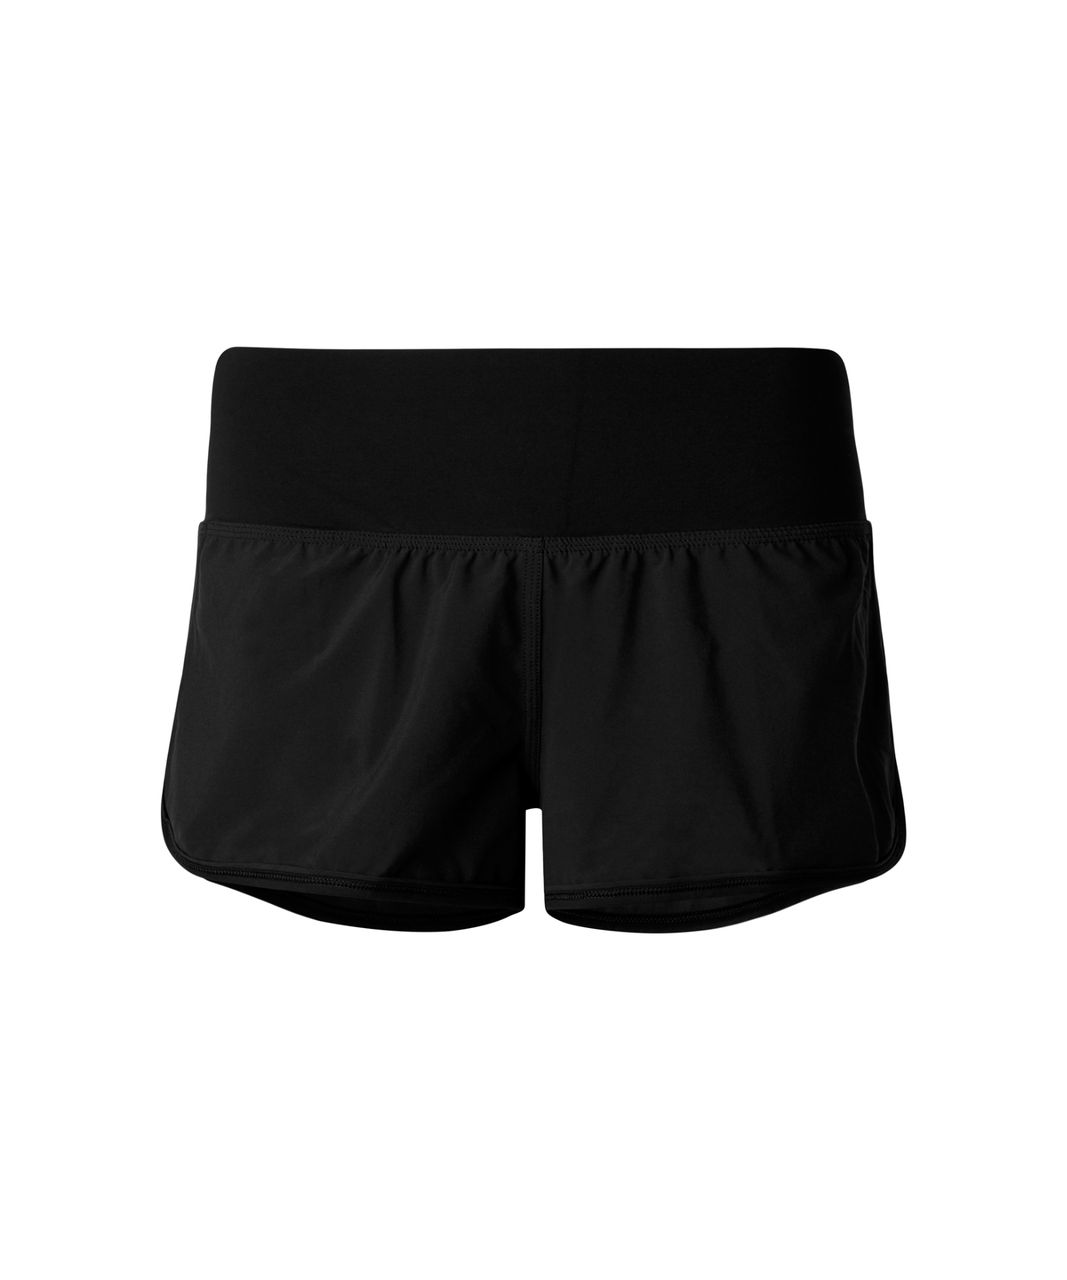 Lululemon Drop It Low Short - Black